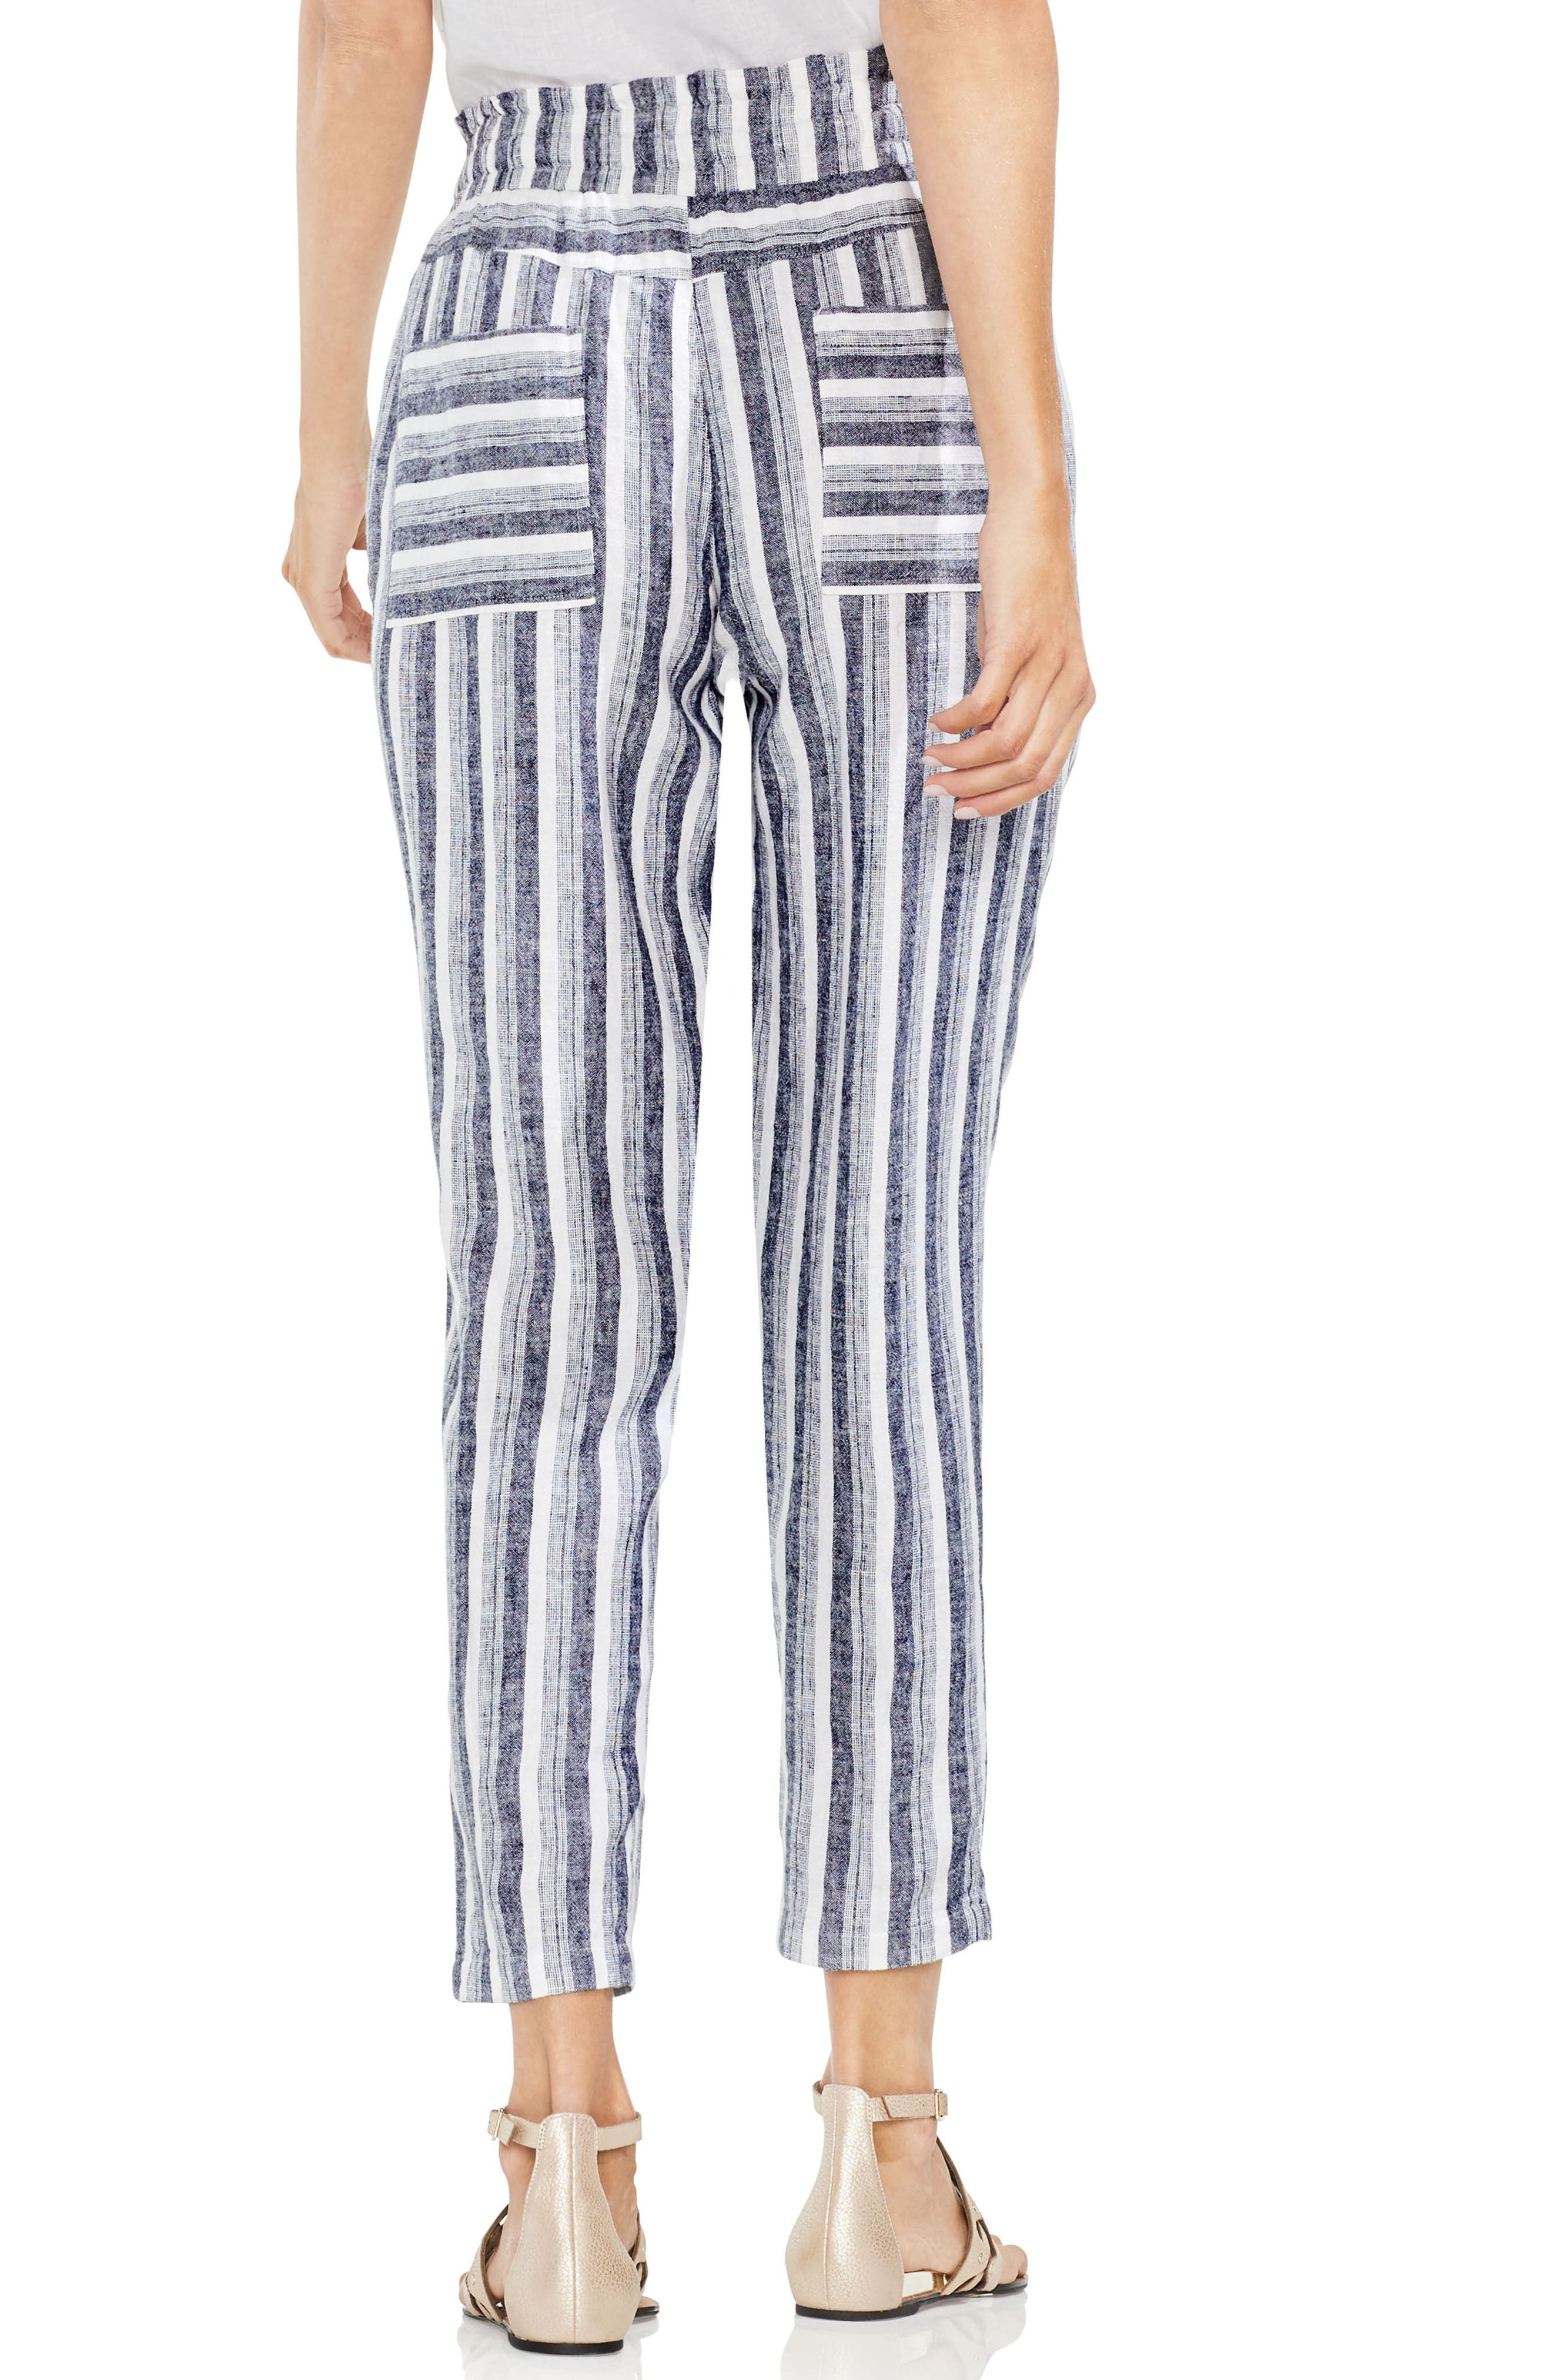 Shore Linen Blend Stripe Drawstring Pants,                             Alternate thumbnail 2, color,                             145